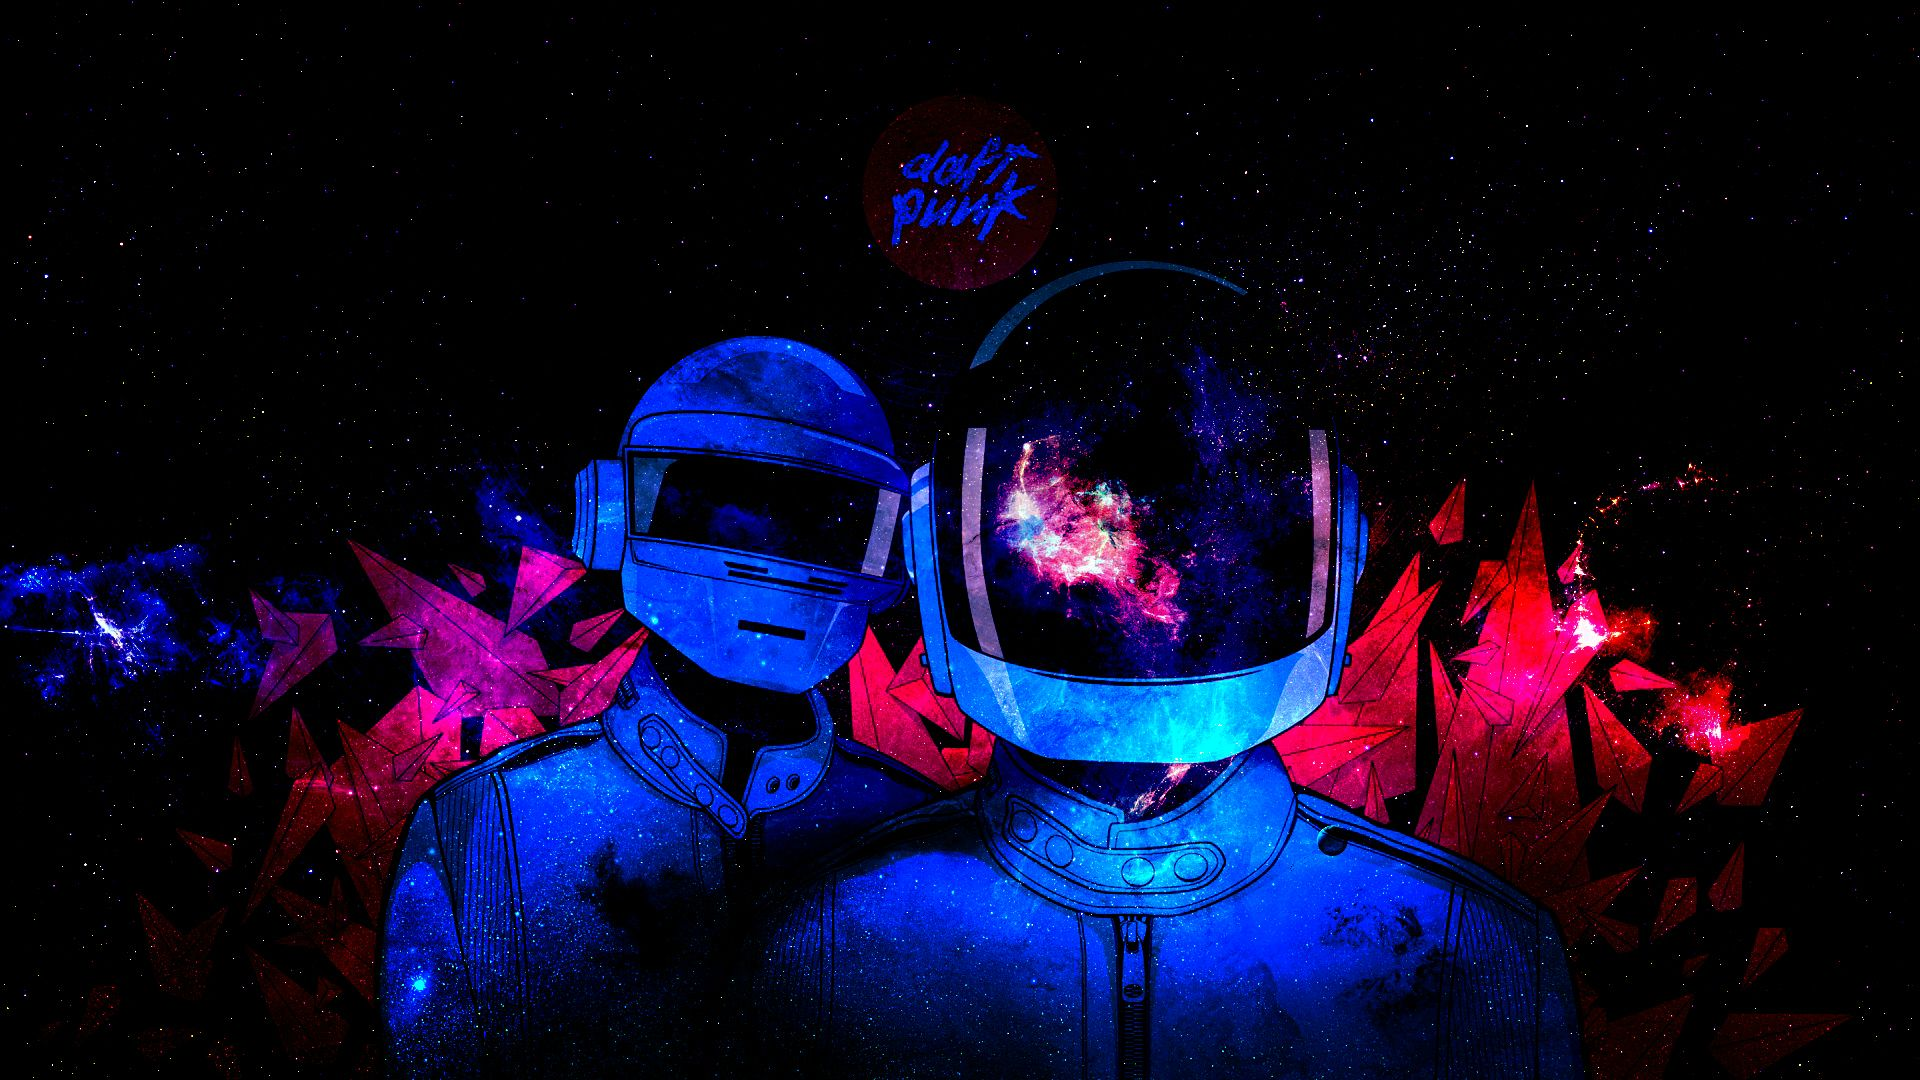 Daft Punk Hd Wallpaper Background Image 1920x1080 Id 331785 Wallpaper Abyss